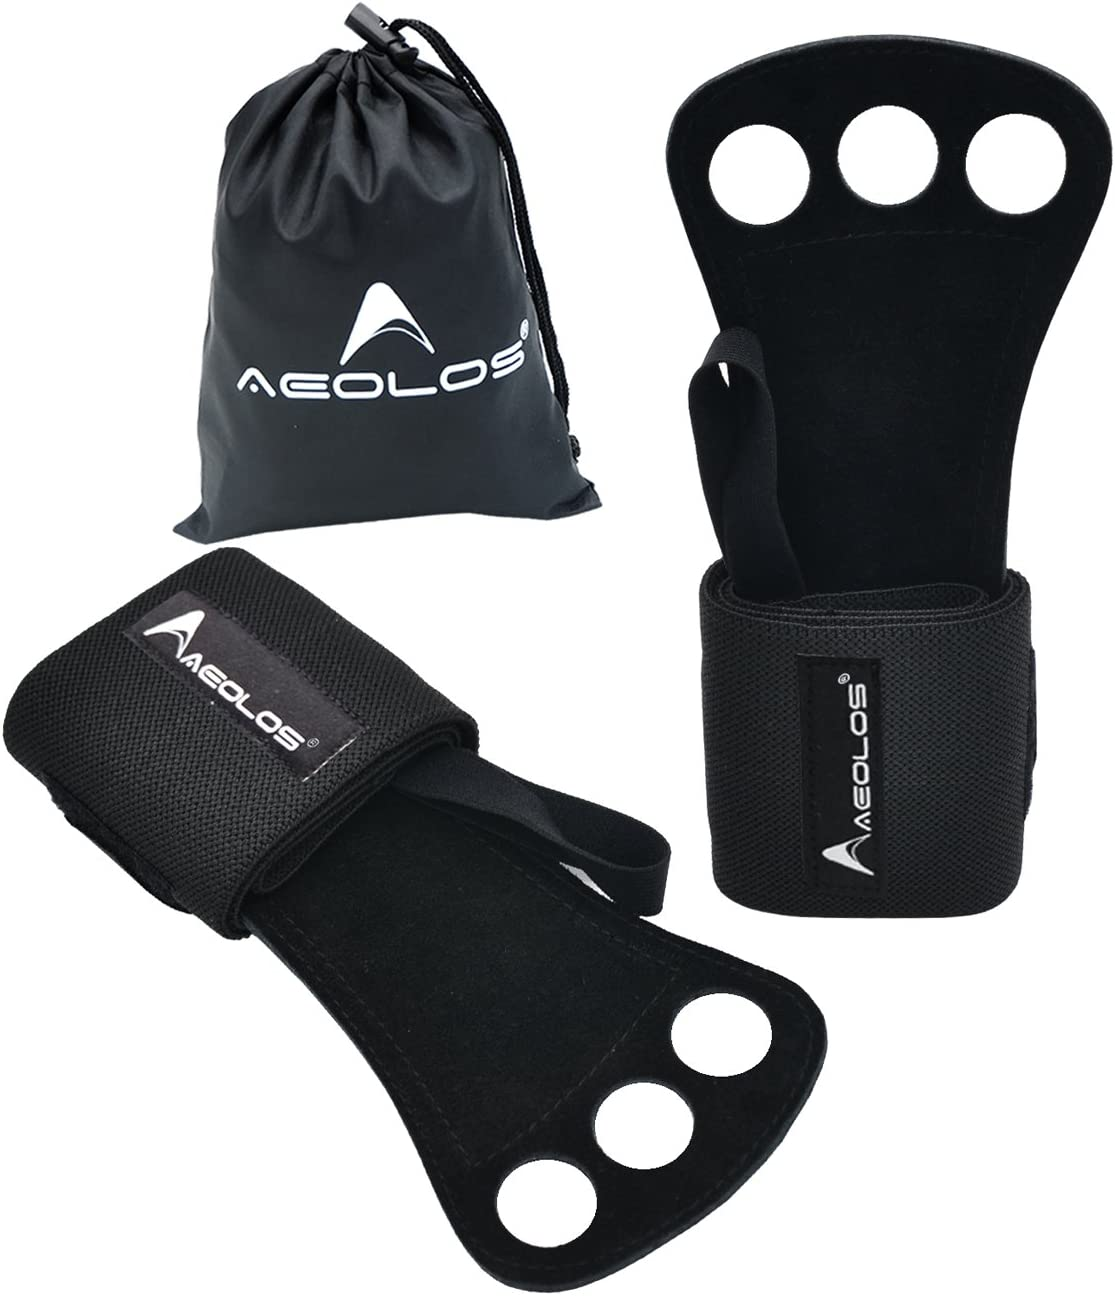 Gymnastics San Antonio Mall Hand Grips Gloves with Safety and trust Wrist -Perfect Support Wrap fo